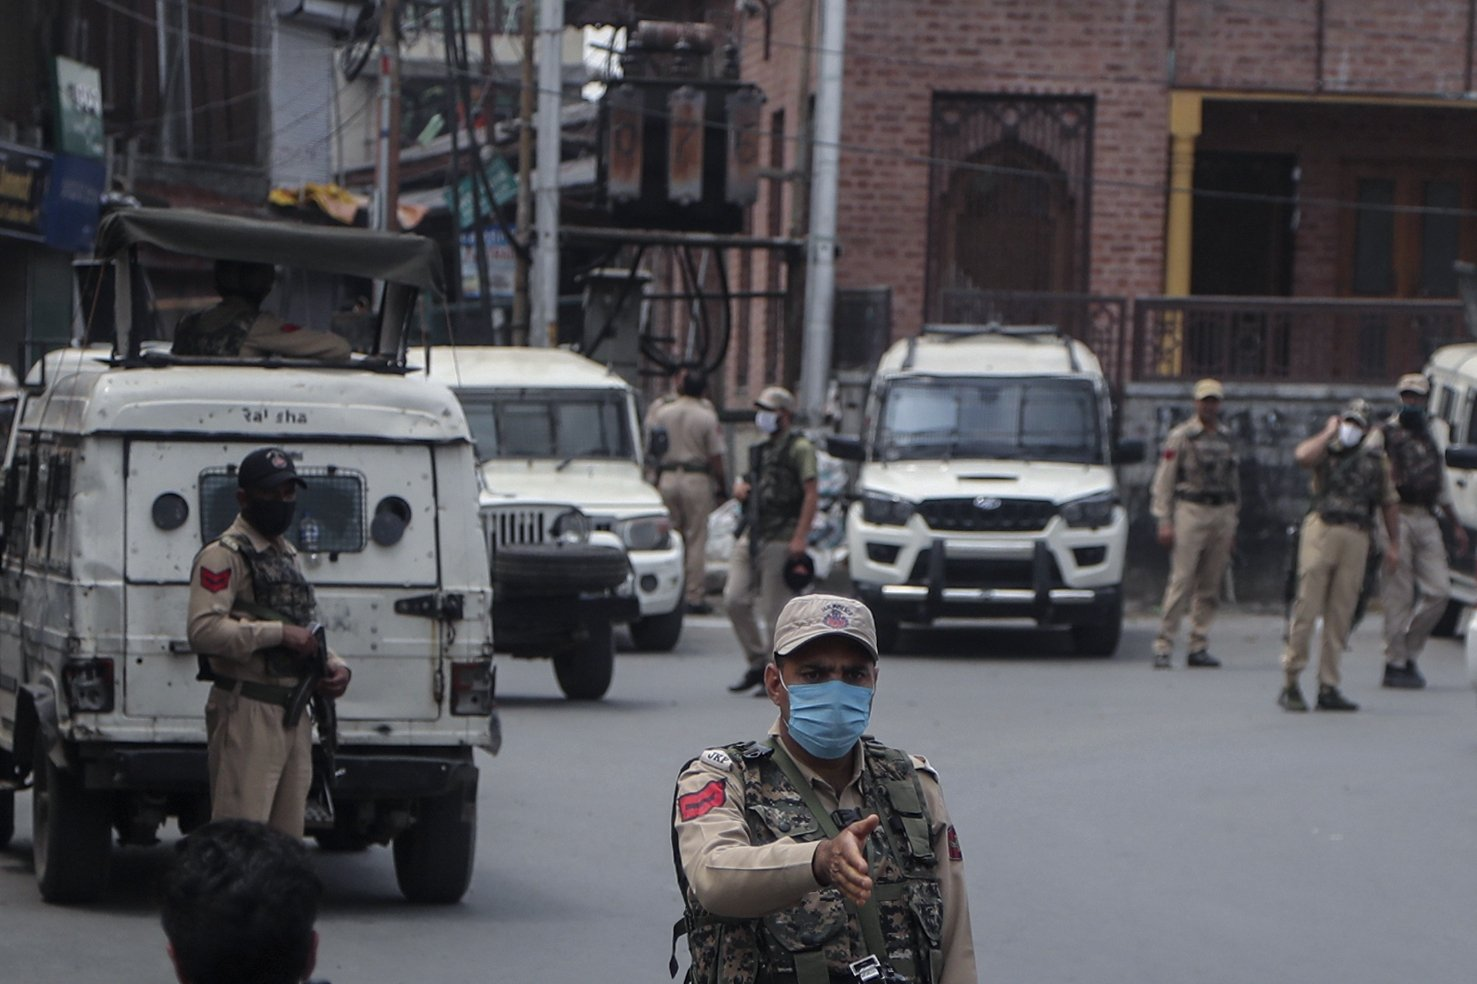 Indian police officers guard a closed market during a strike on the second anniversary of India's revocation of the disputed region's semi-autonomy in Srinagar, Indian-controlled Kashmir, Aug. 5, 2021. (AP Photo)